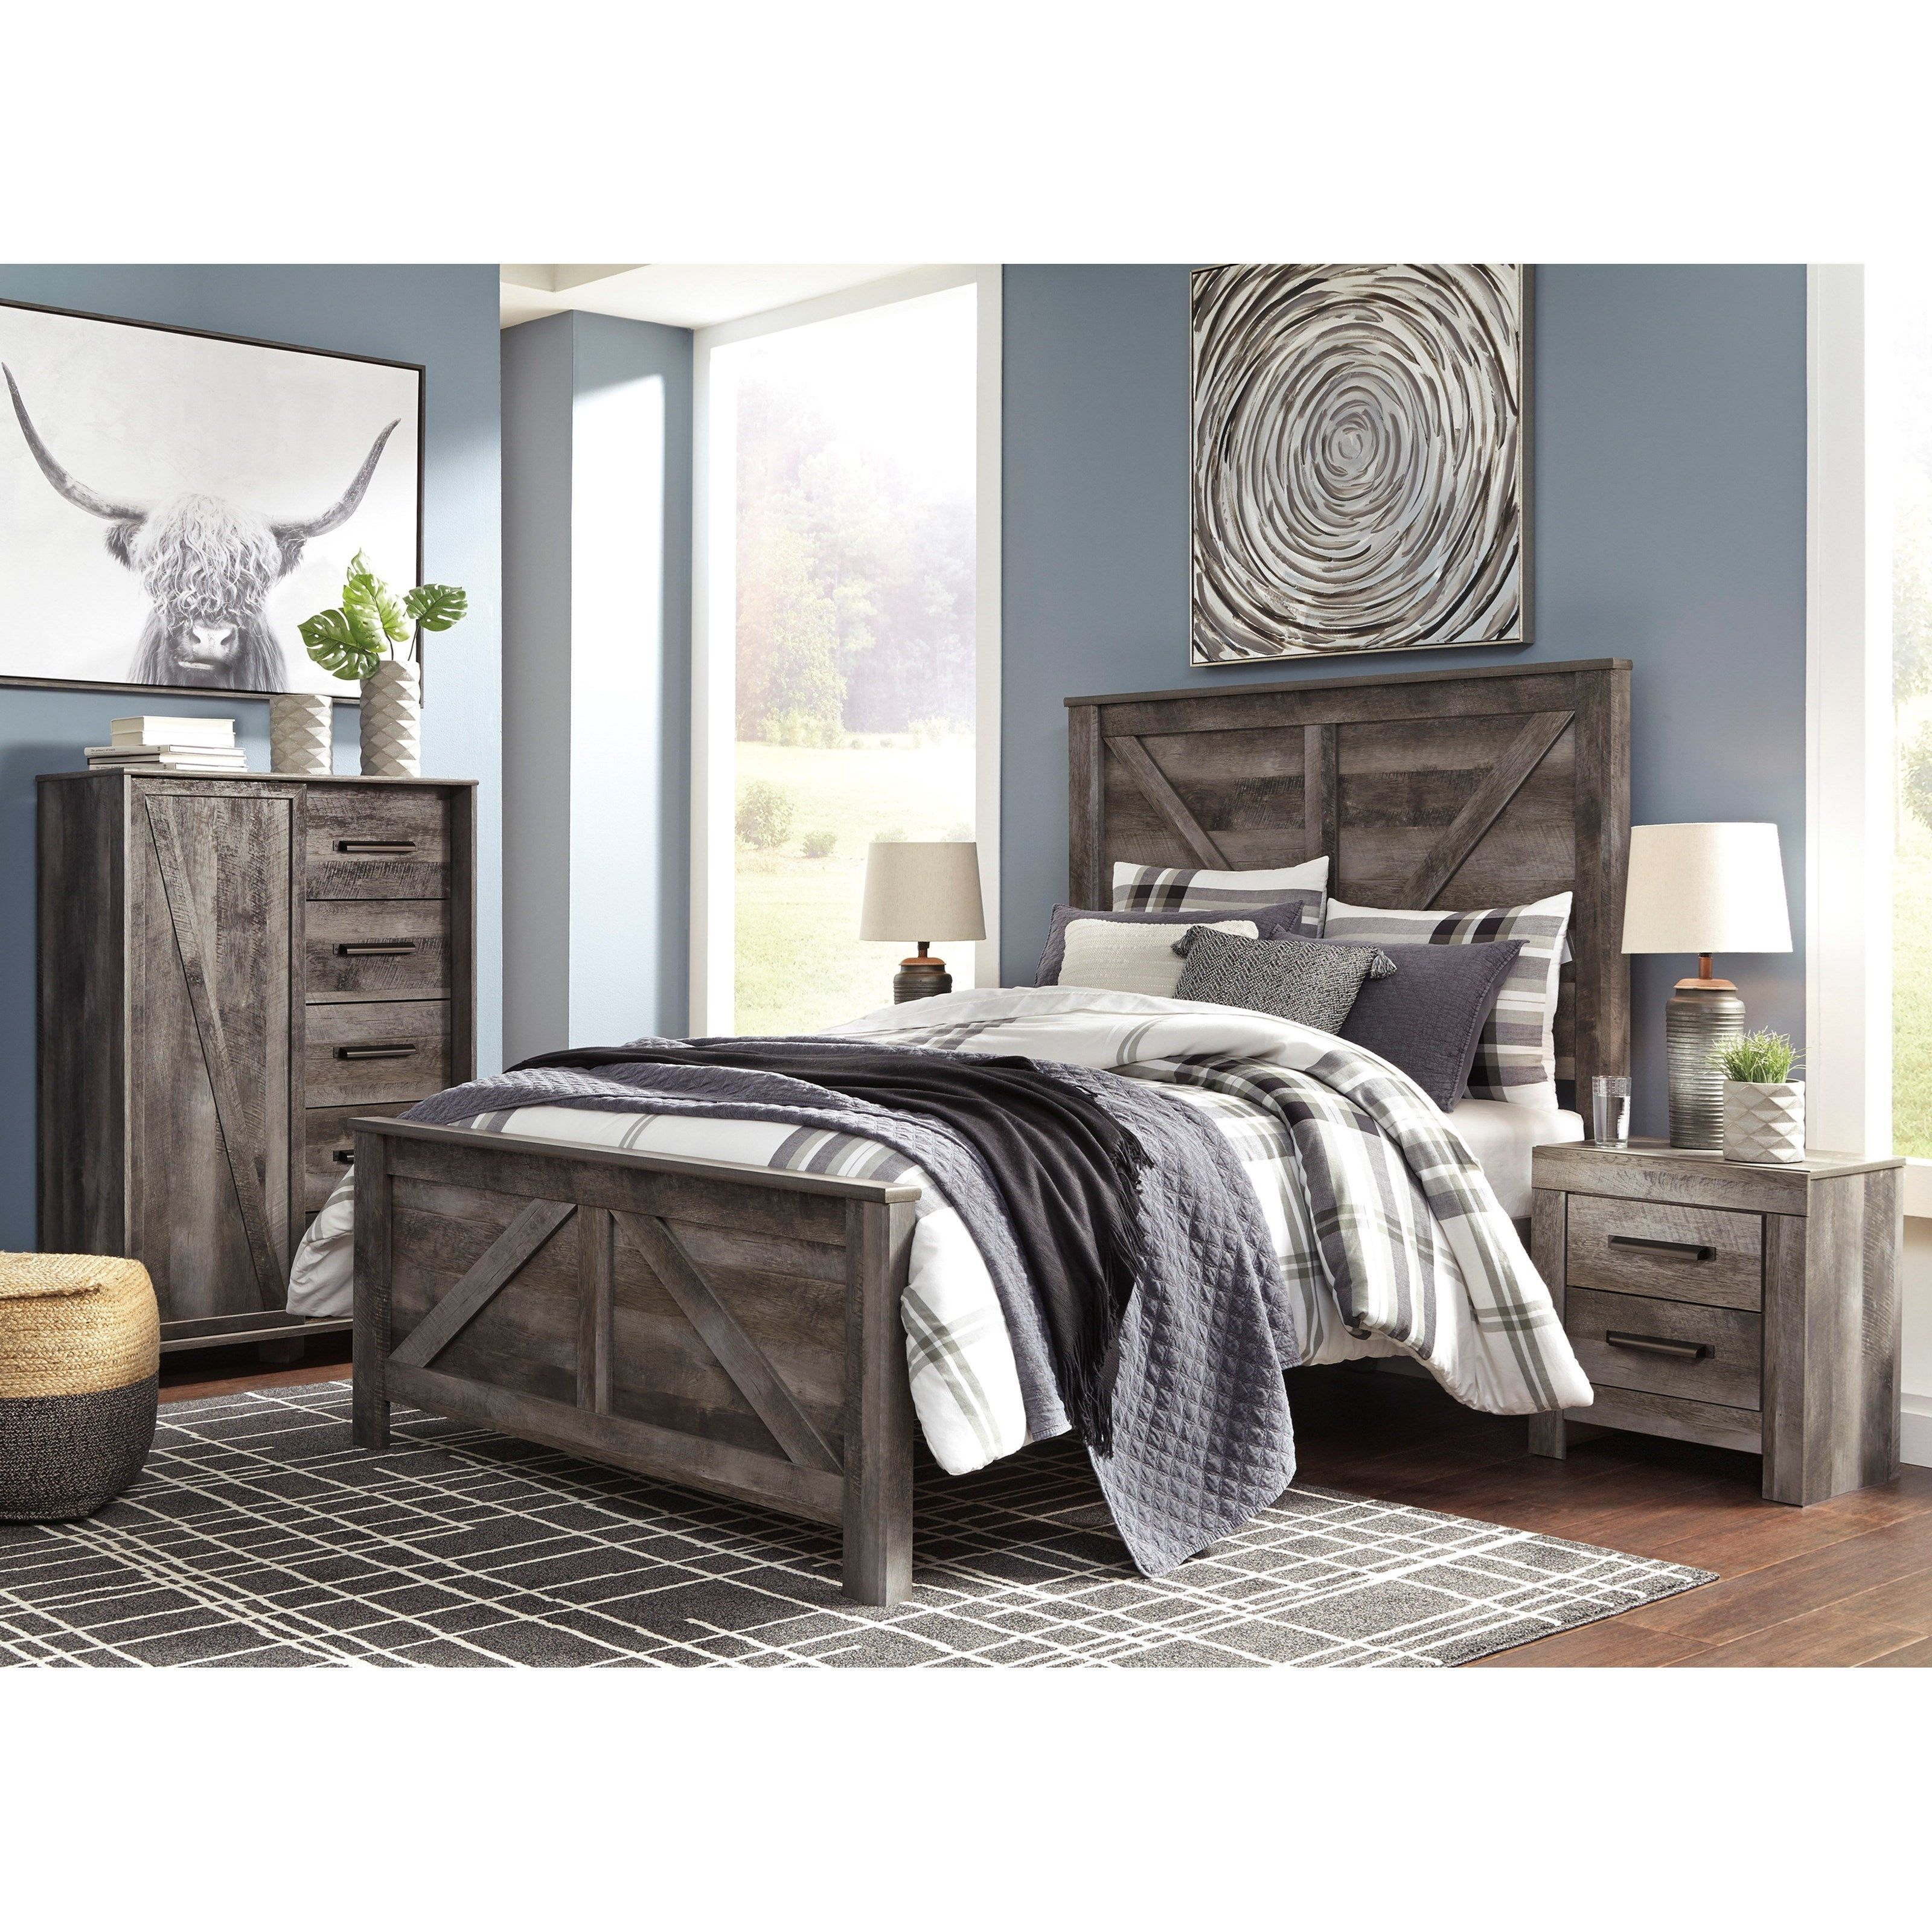 Wynnlow Queen Bedroom Group by Signature Design by Ashley